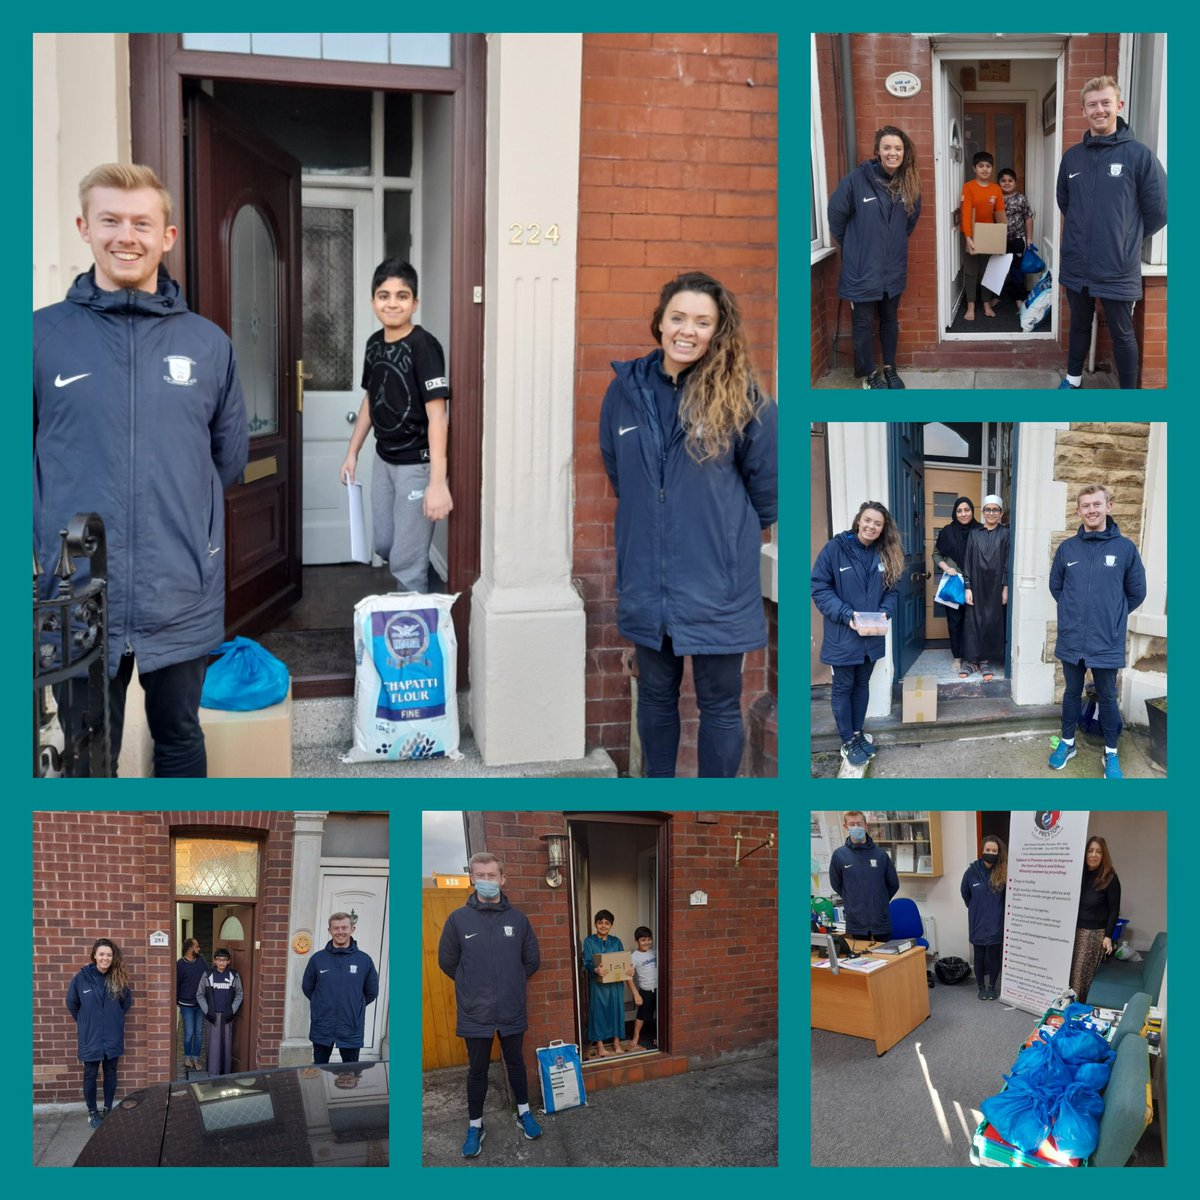 @pnecommunity @ZafarC @MatthewBrownLab @estellew @quwwatulislam @CicOwned @DeepdaleCA @RMActiveLancs @CgaSian working with PNE Trust yesterday delivering locally sourced dietary sensitive food in Deepdale thank you Rebecca and Alistair whose a famous footballer apparently 🤣